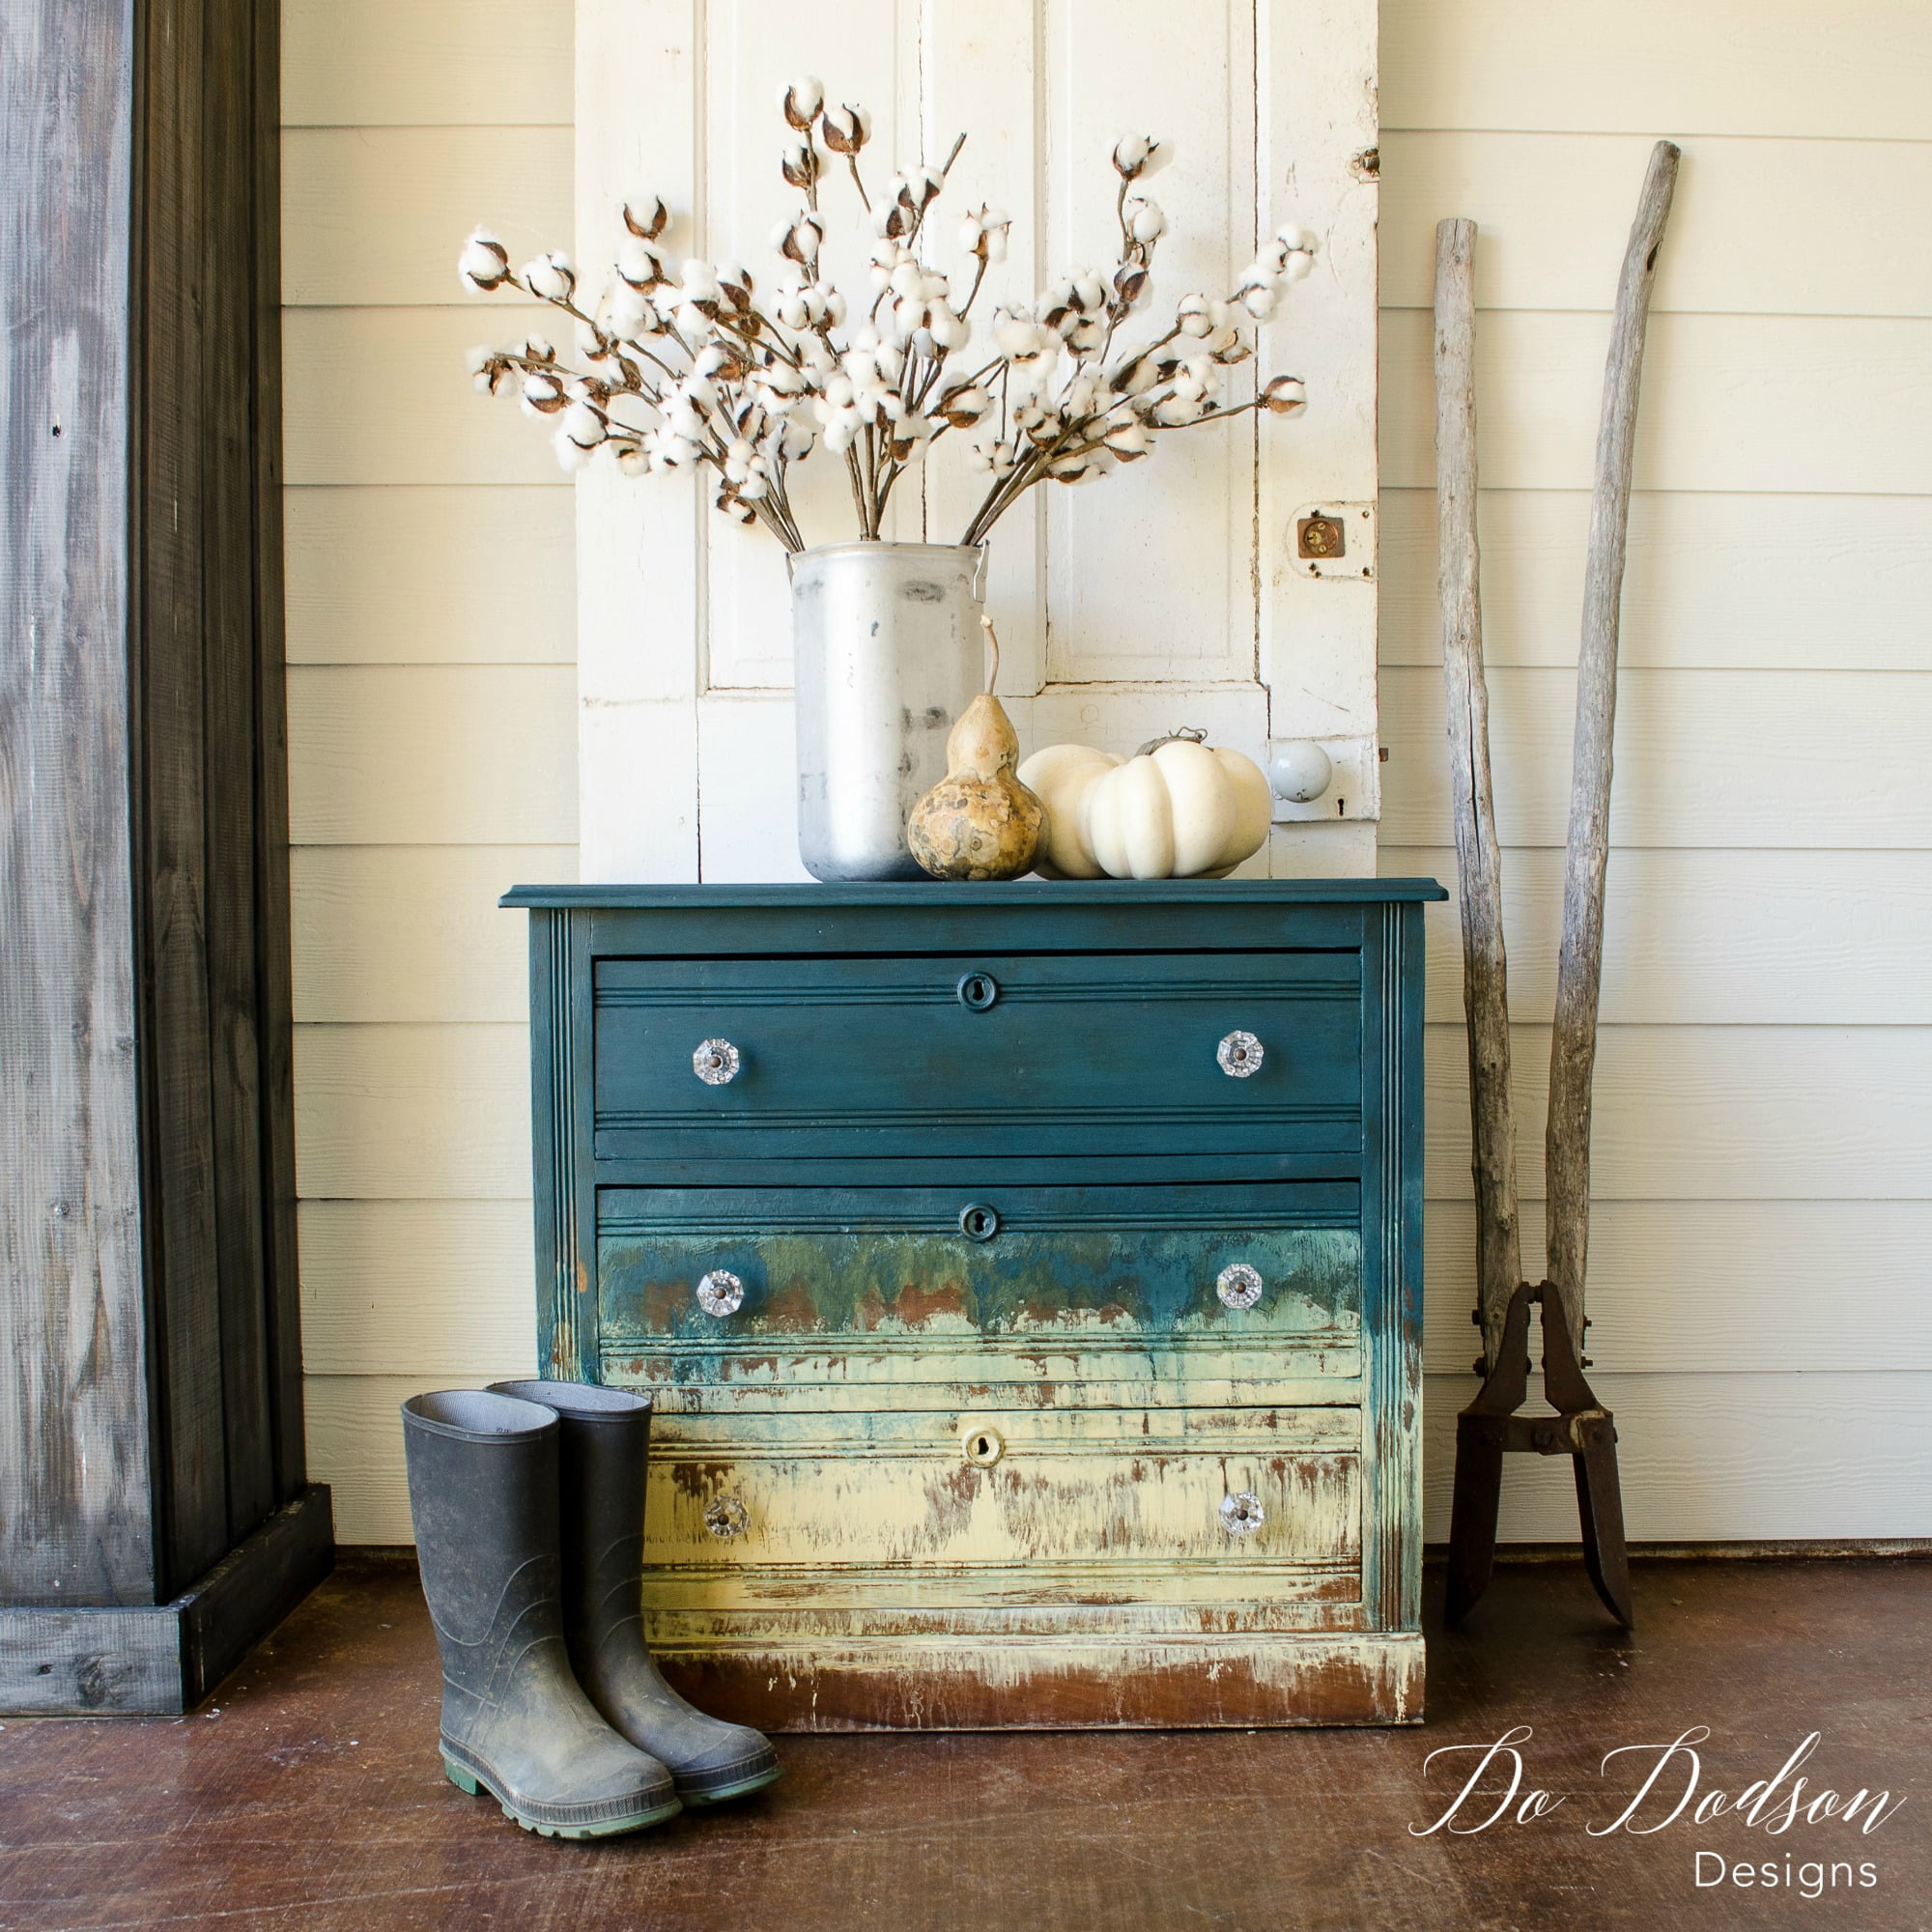 Amazing Hand Painted Furniture That Will Blow Your Mind #dododsondesigns  #handpaintedfurniture #paintedfurniture